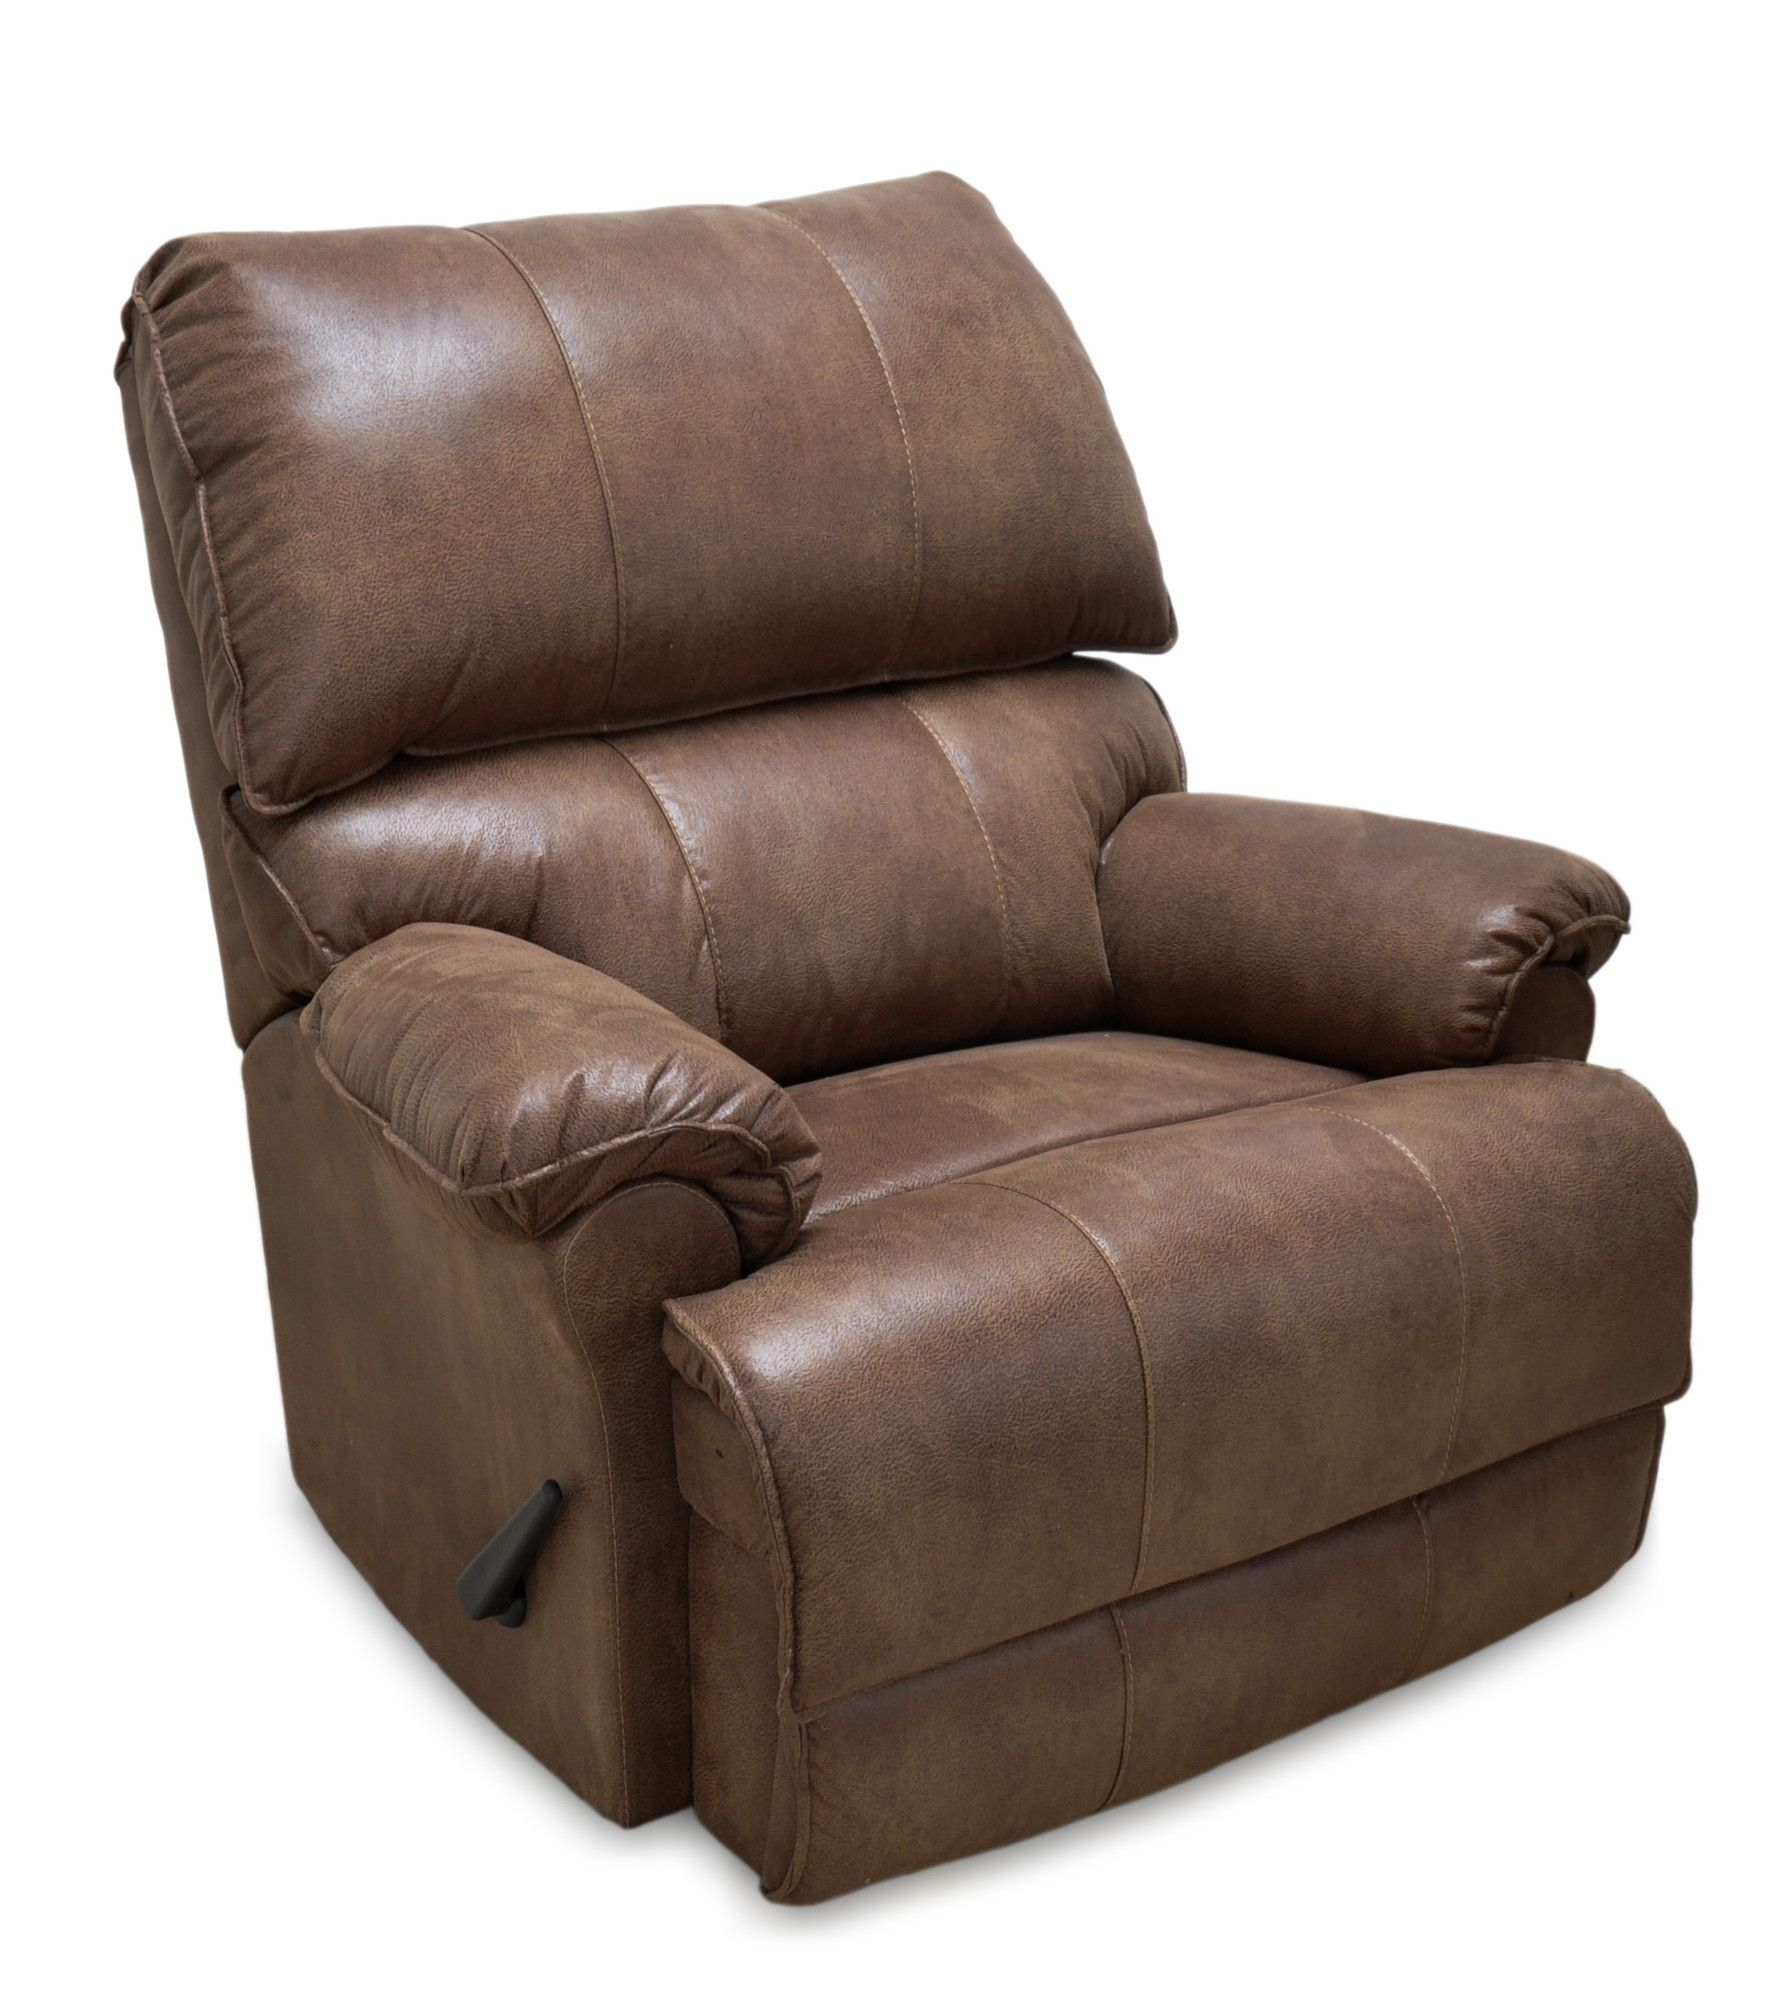 Emington Rocker Recliner